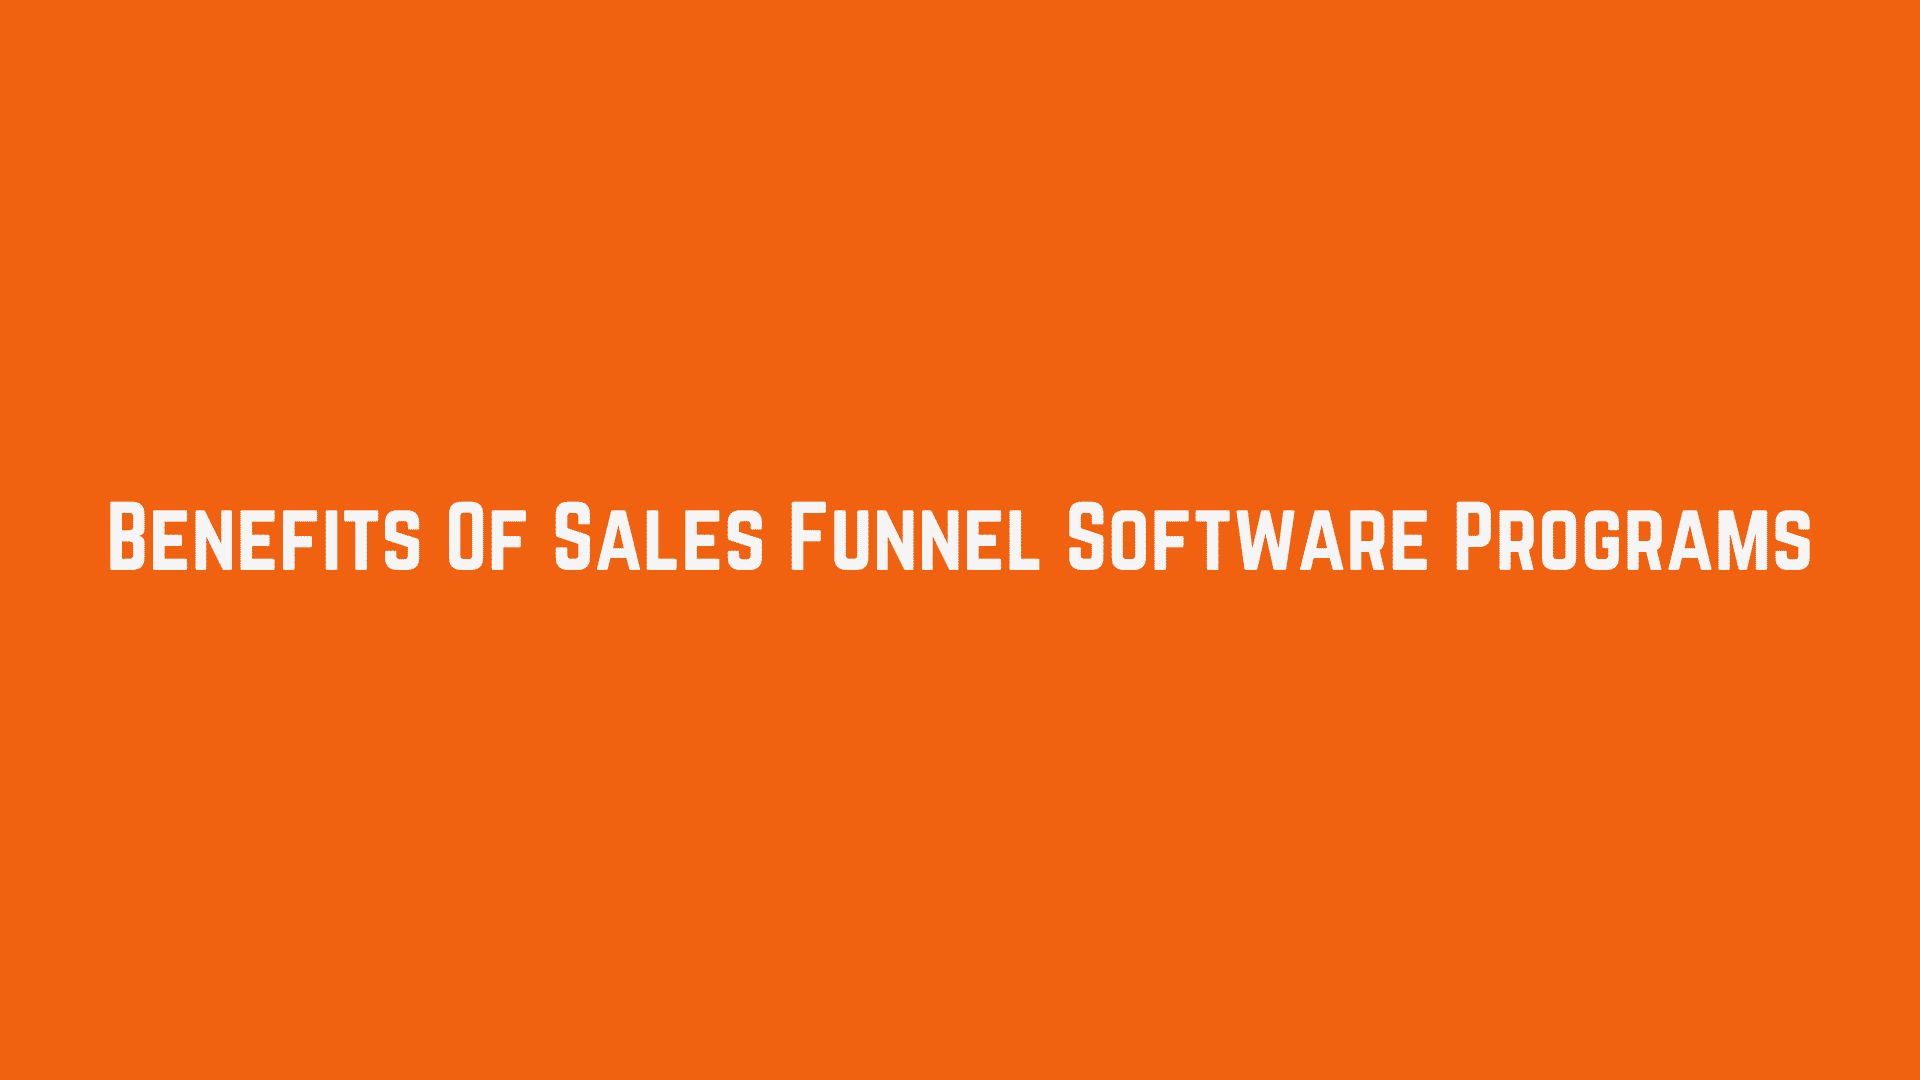 Benefits Of Sales Funnel Software Programs